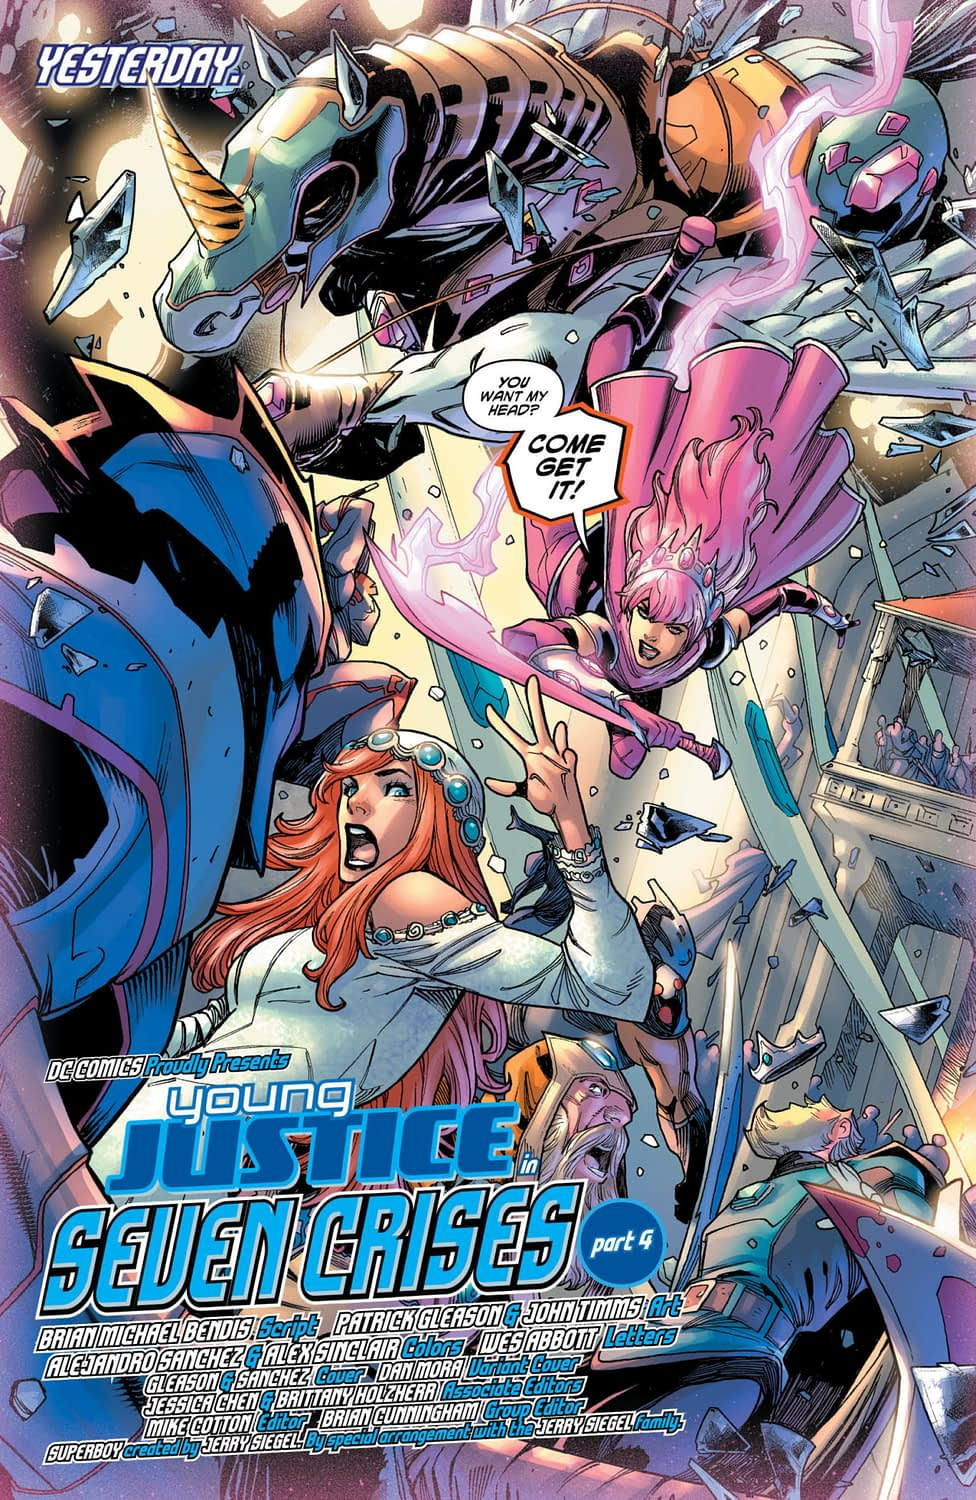 Ain't No Party Like a Gemworld Wedding Party in Tomorrow's Young Justice #4